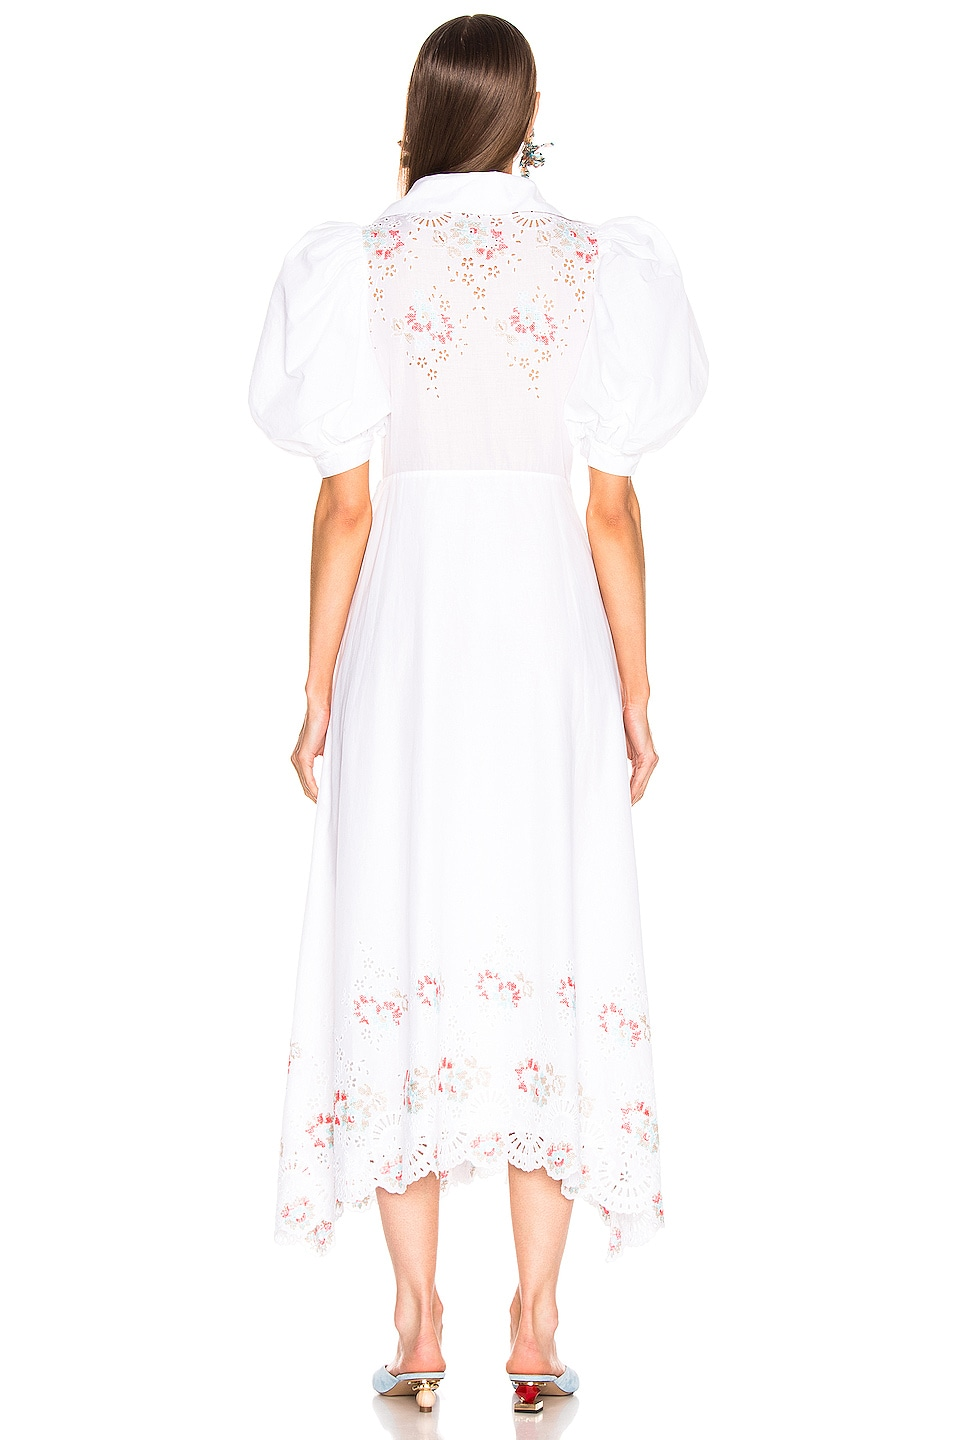 Image 3 of SILVIA TCHERASSI for FWRD Embroidered Assunta Dress in Floral White